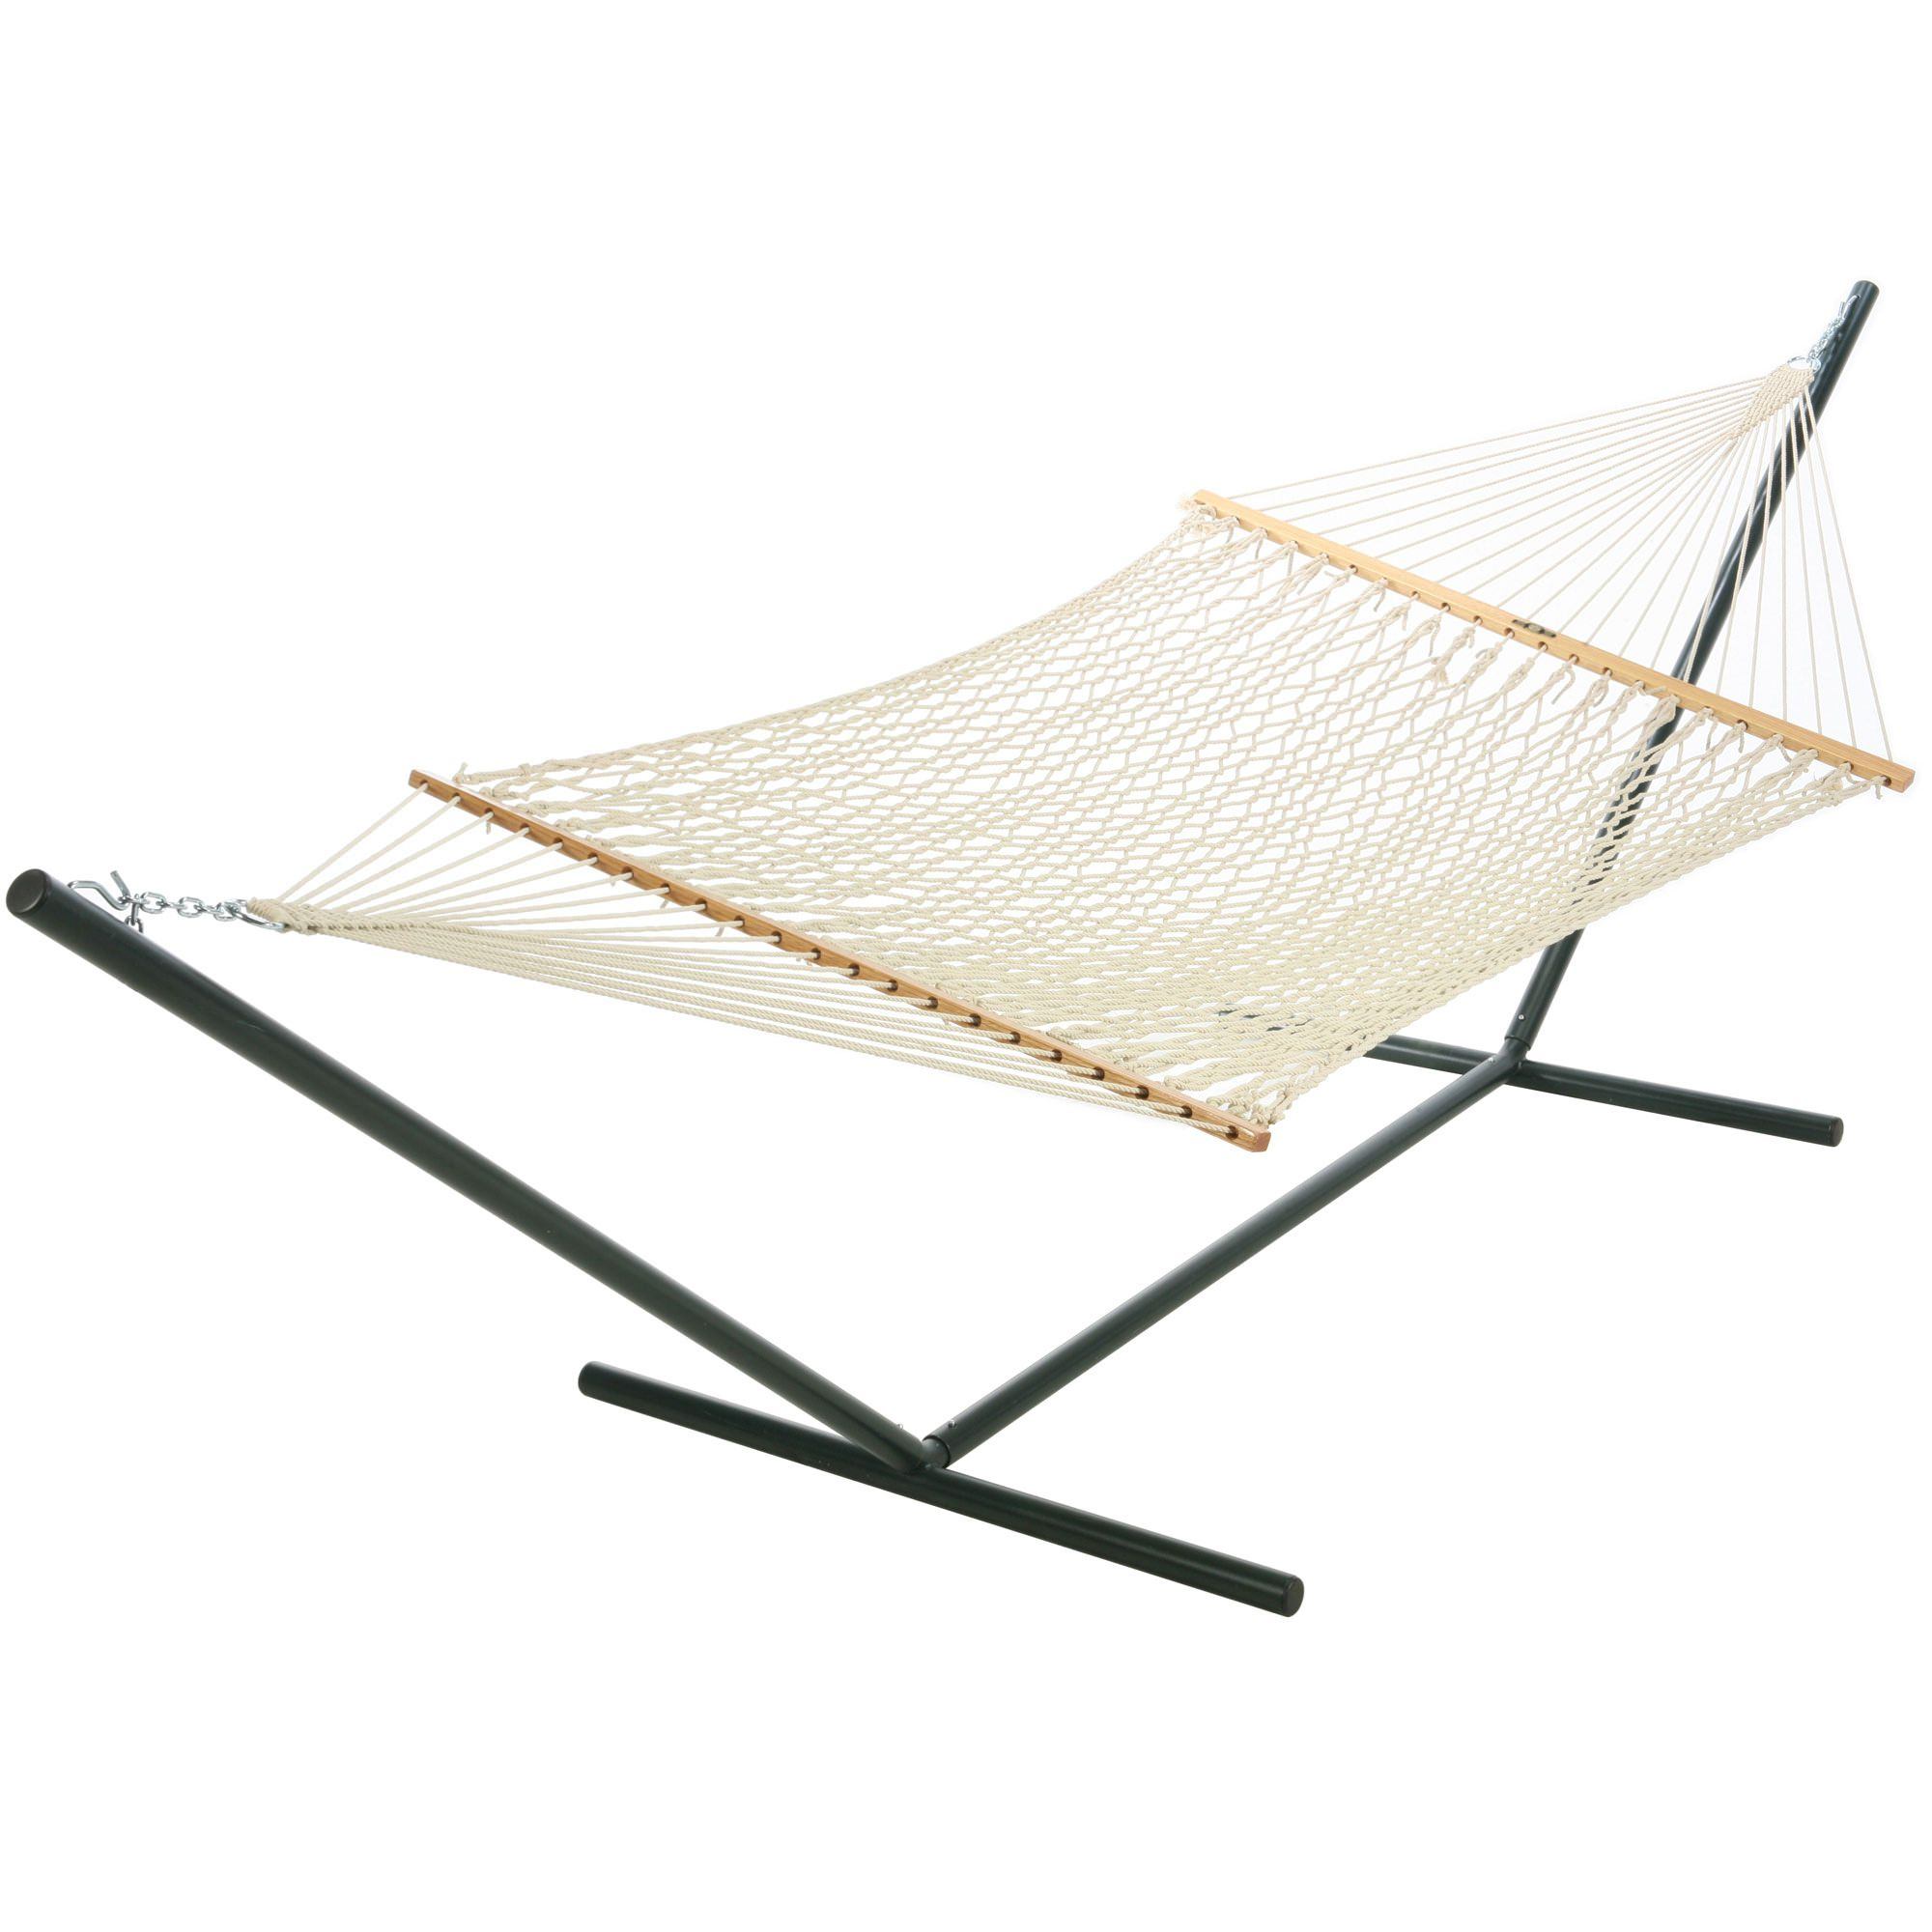 rope chair target therapist for sale large oatmeal duracord hammock pawleys island hammocks